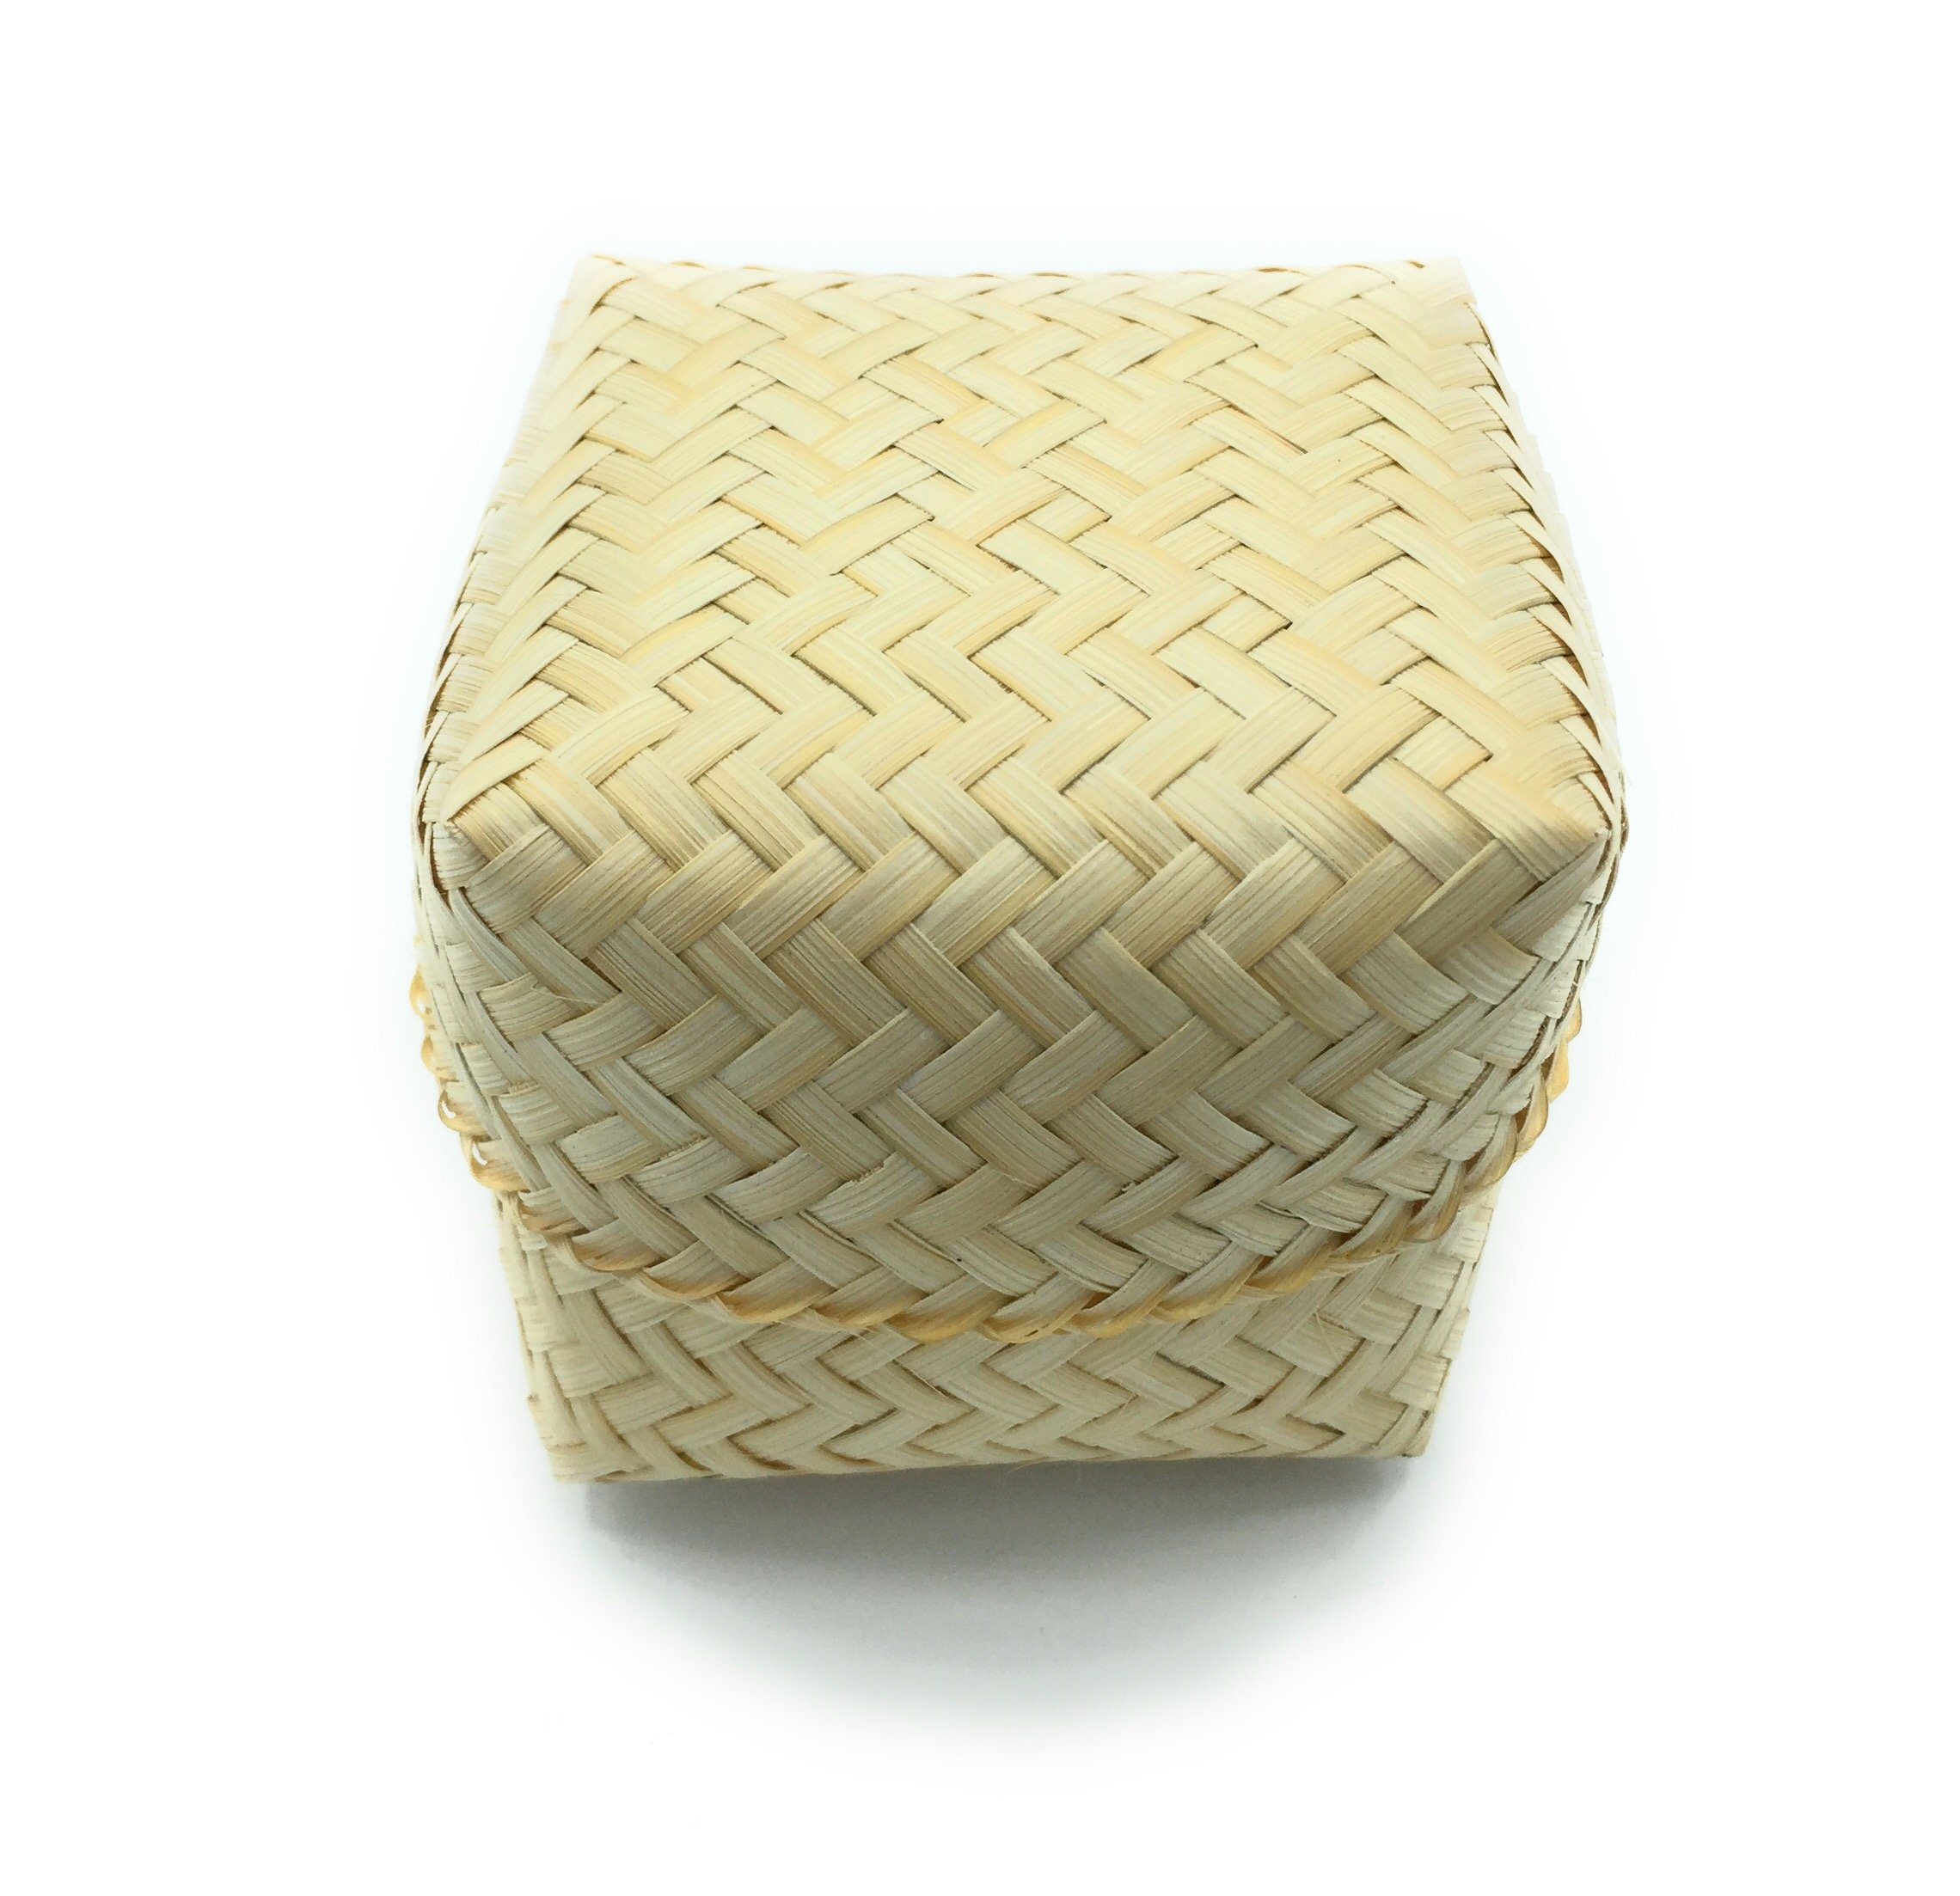 WD-4 Set of -Thai Eco-friendly Natural bamboo weave Handmade Sticky Rice Serving Basket Small Size 3x3x3'' Natural color